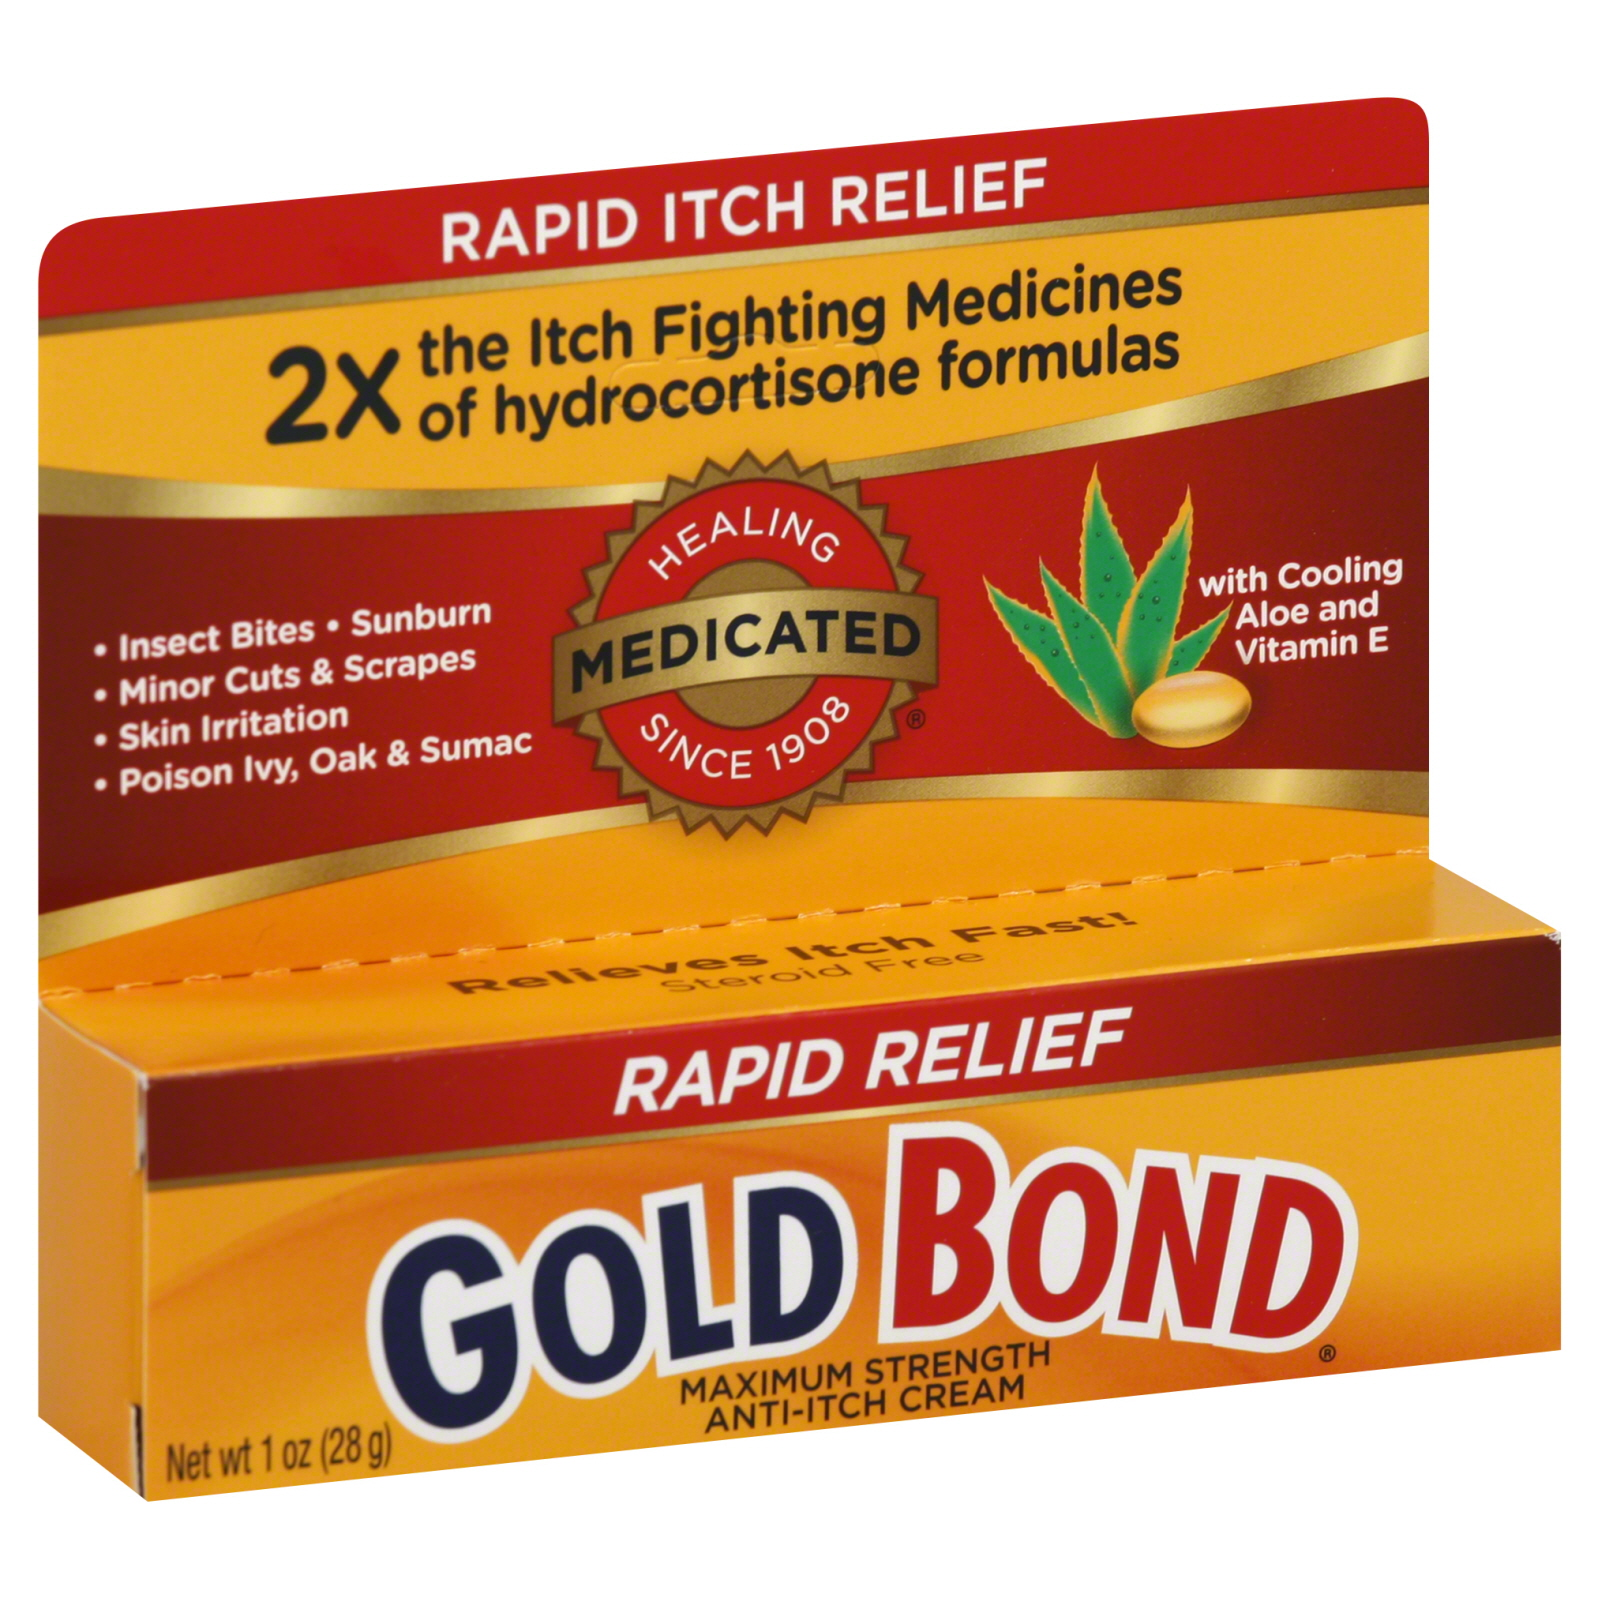 Anti-Itch Cream, Medicated, Maximum Strength, 1 oz (28 g)                                                                        at mygofer.com